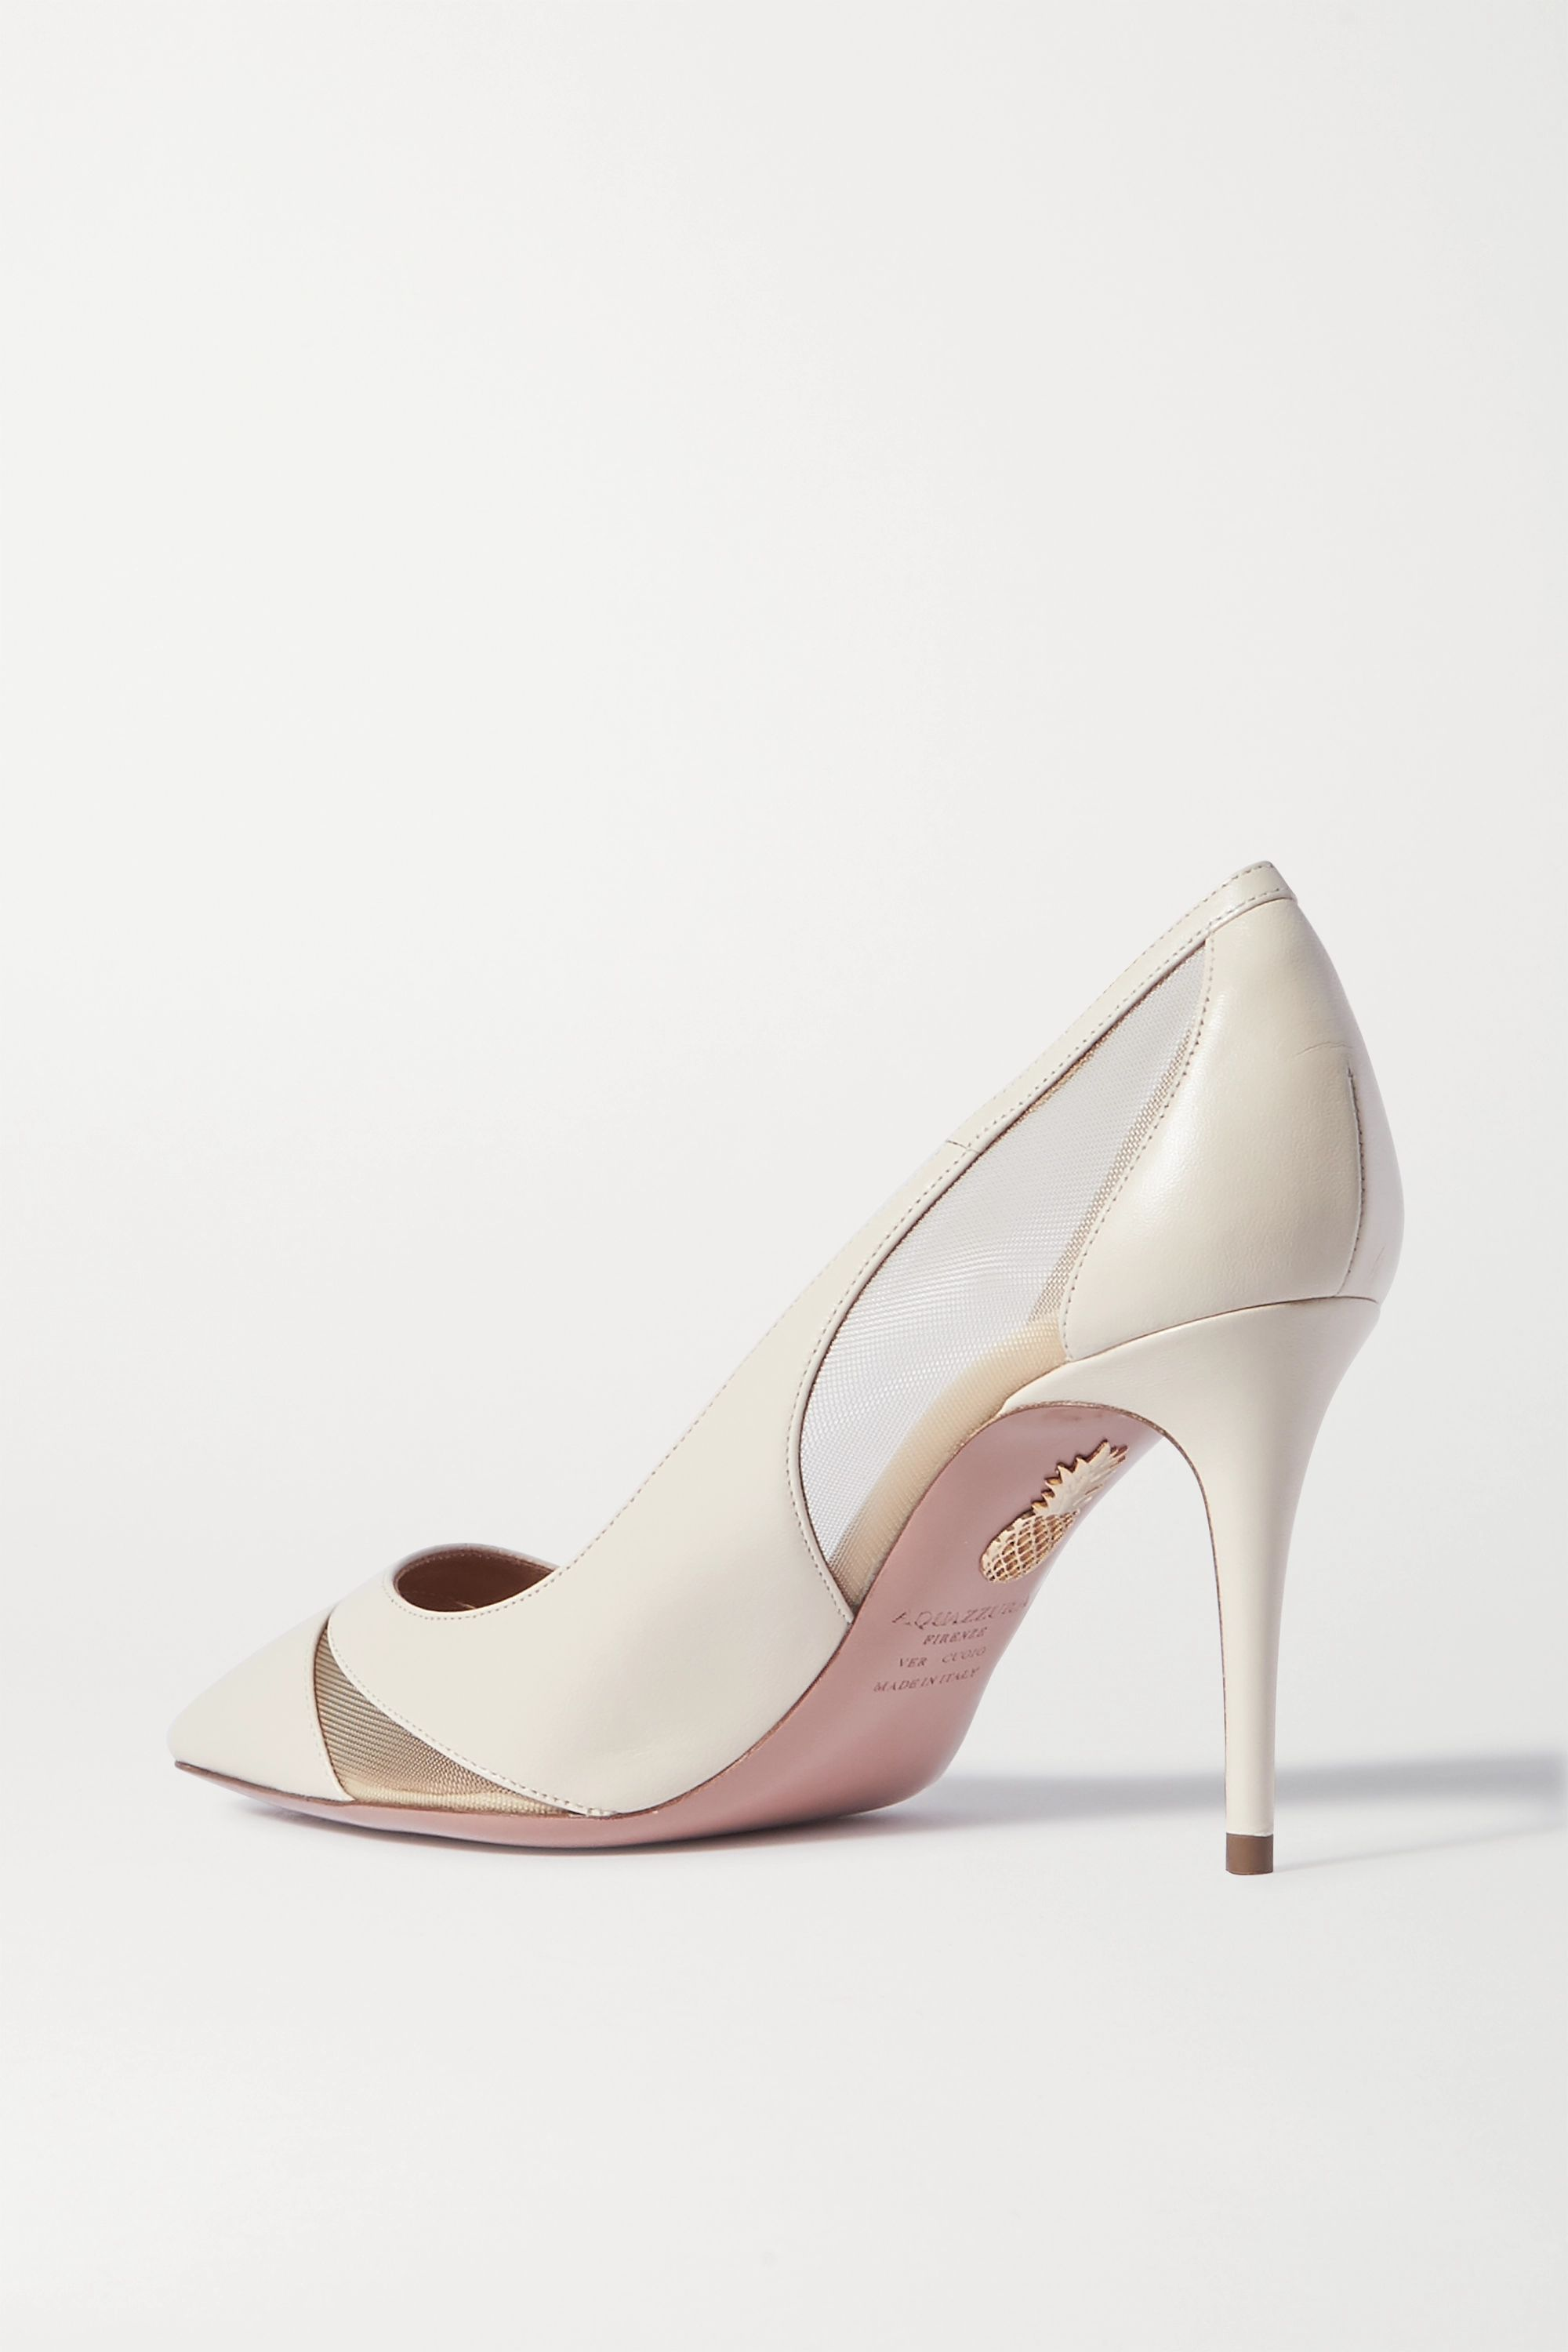 Aquazzura Savoy 85 leather and mesh pumps